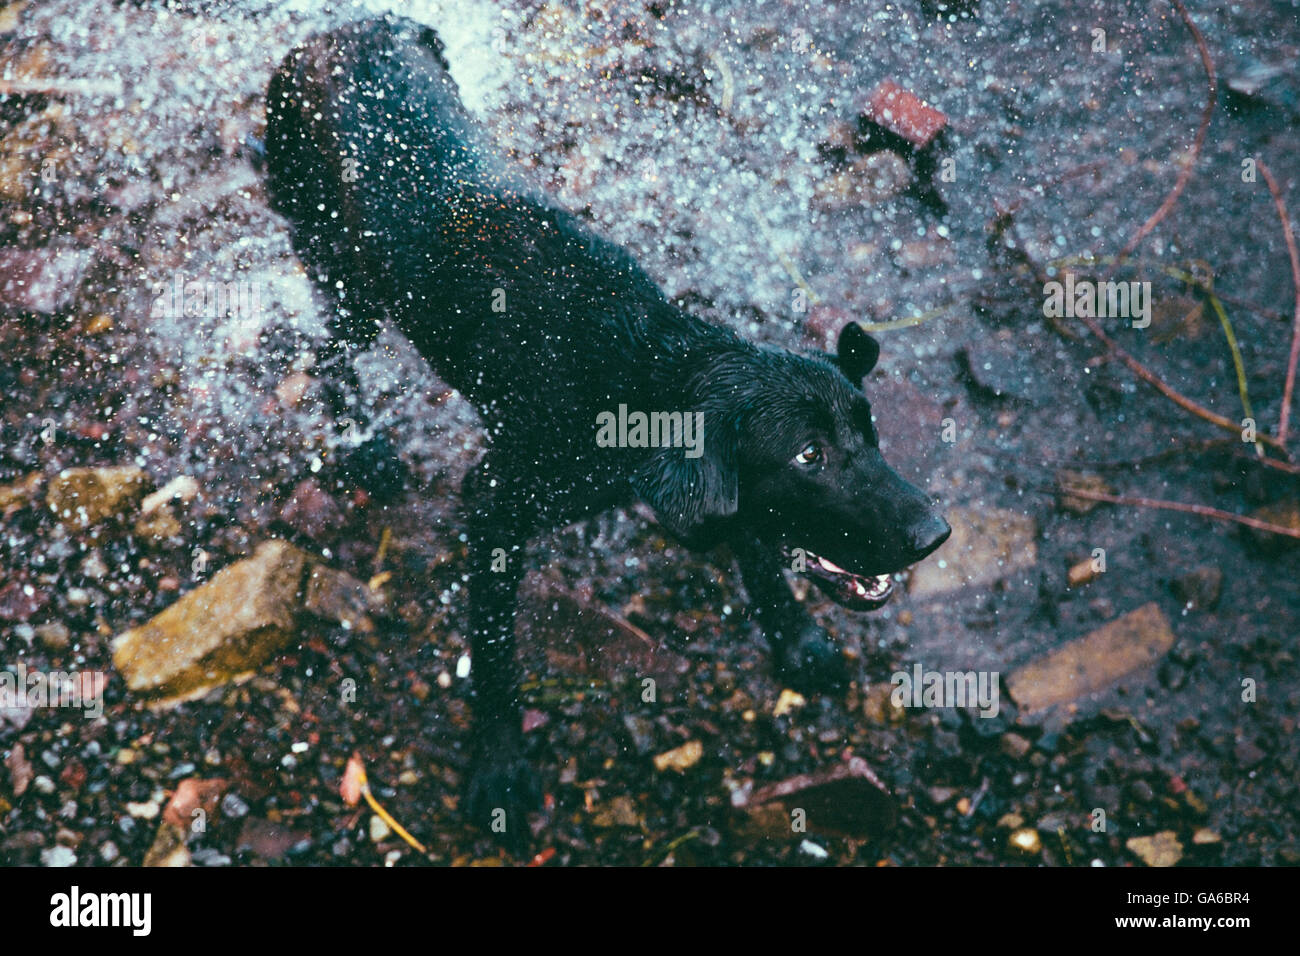 A Black Lab shaking itself dry on a rocky riverbank Stock Photo